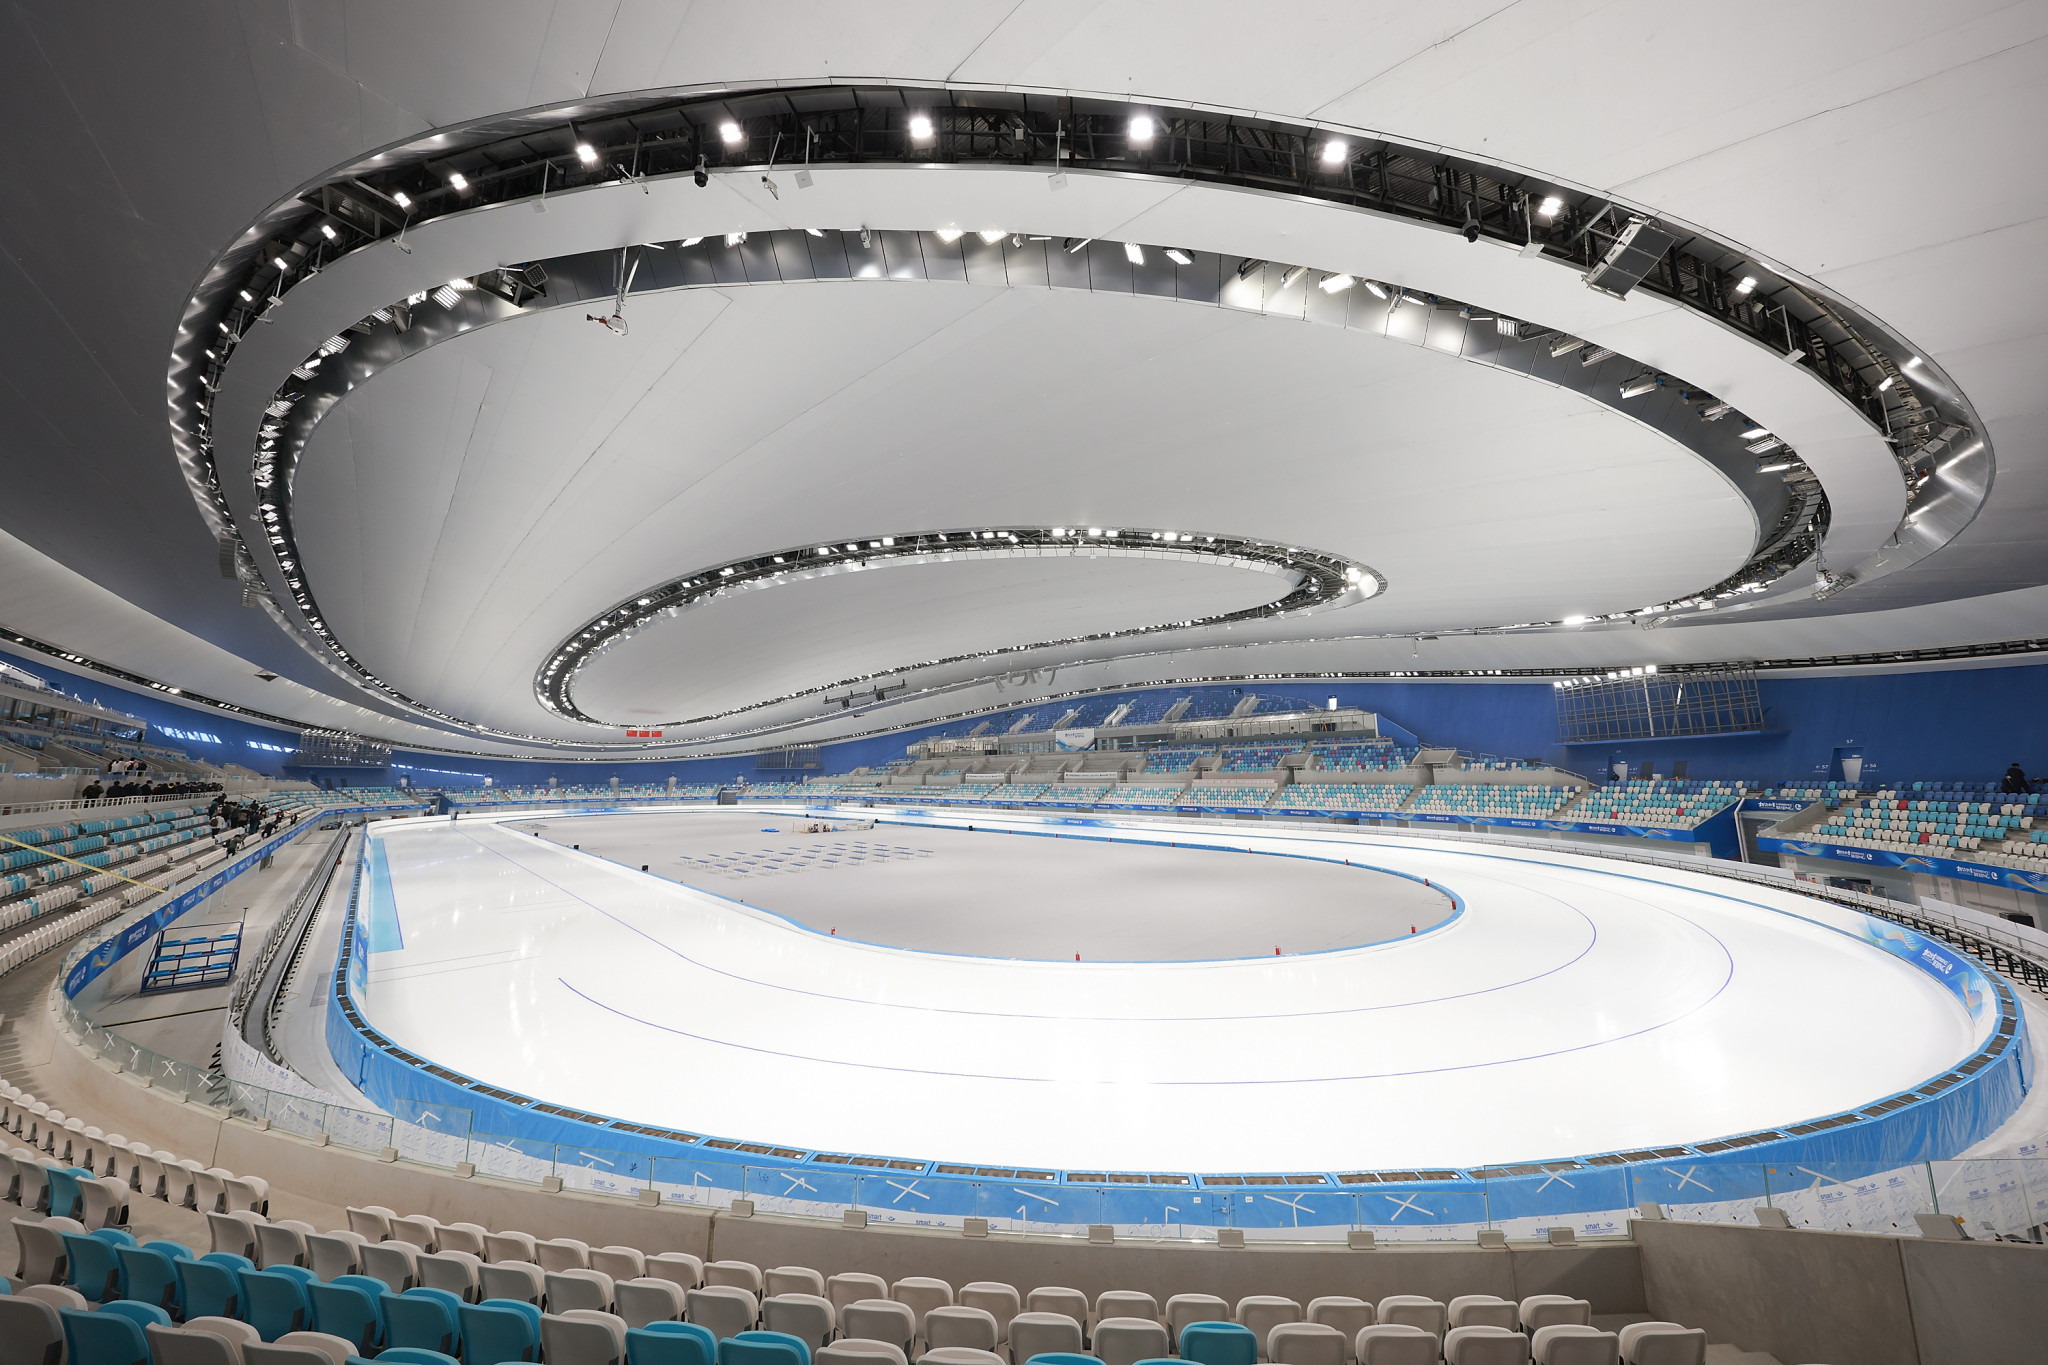 The National Speed Skating Oval is set to stage the speed skating events at Beijing 2022 ©Getty Images